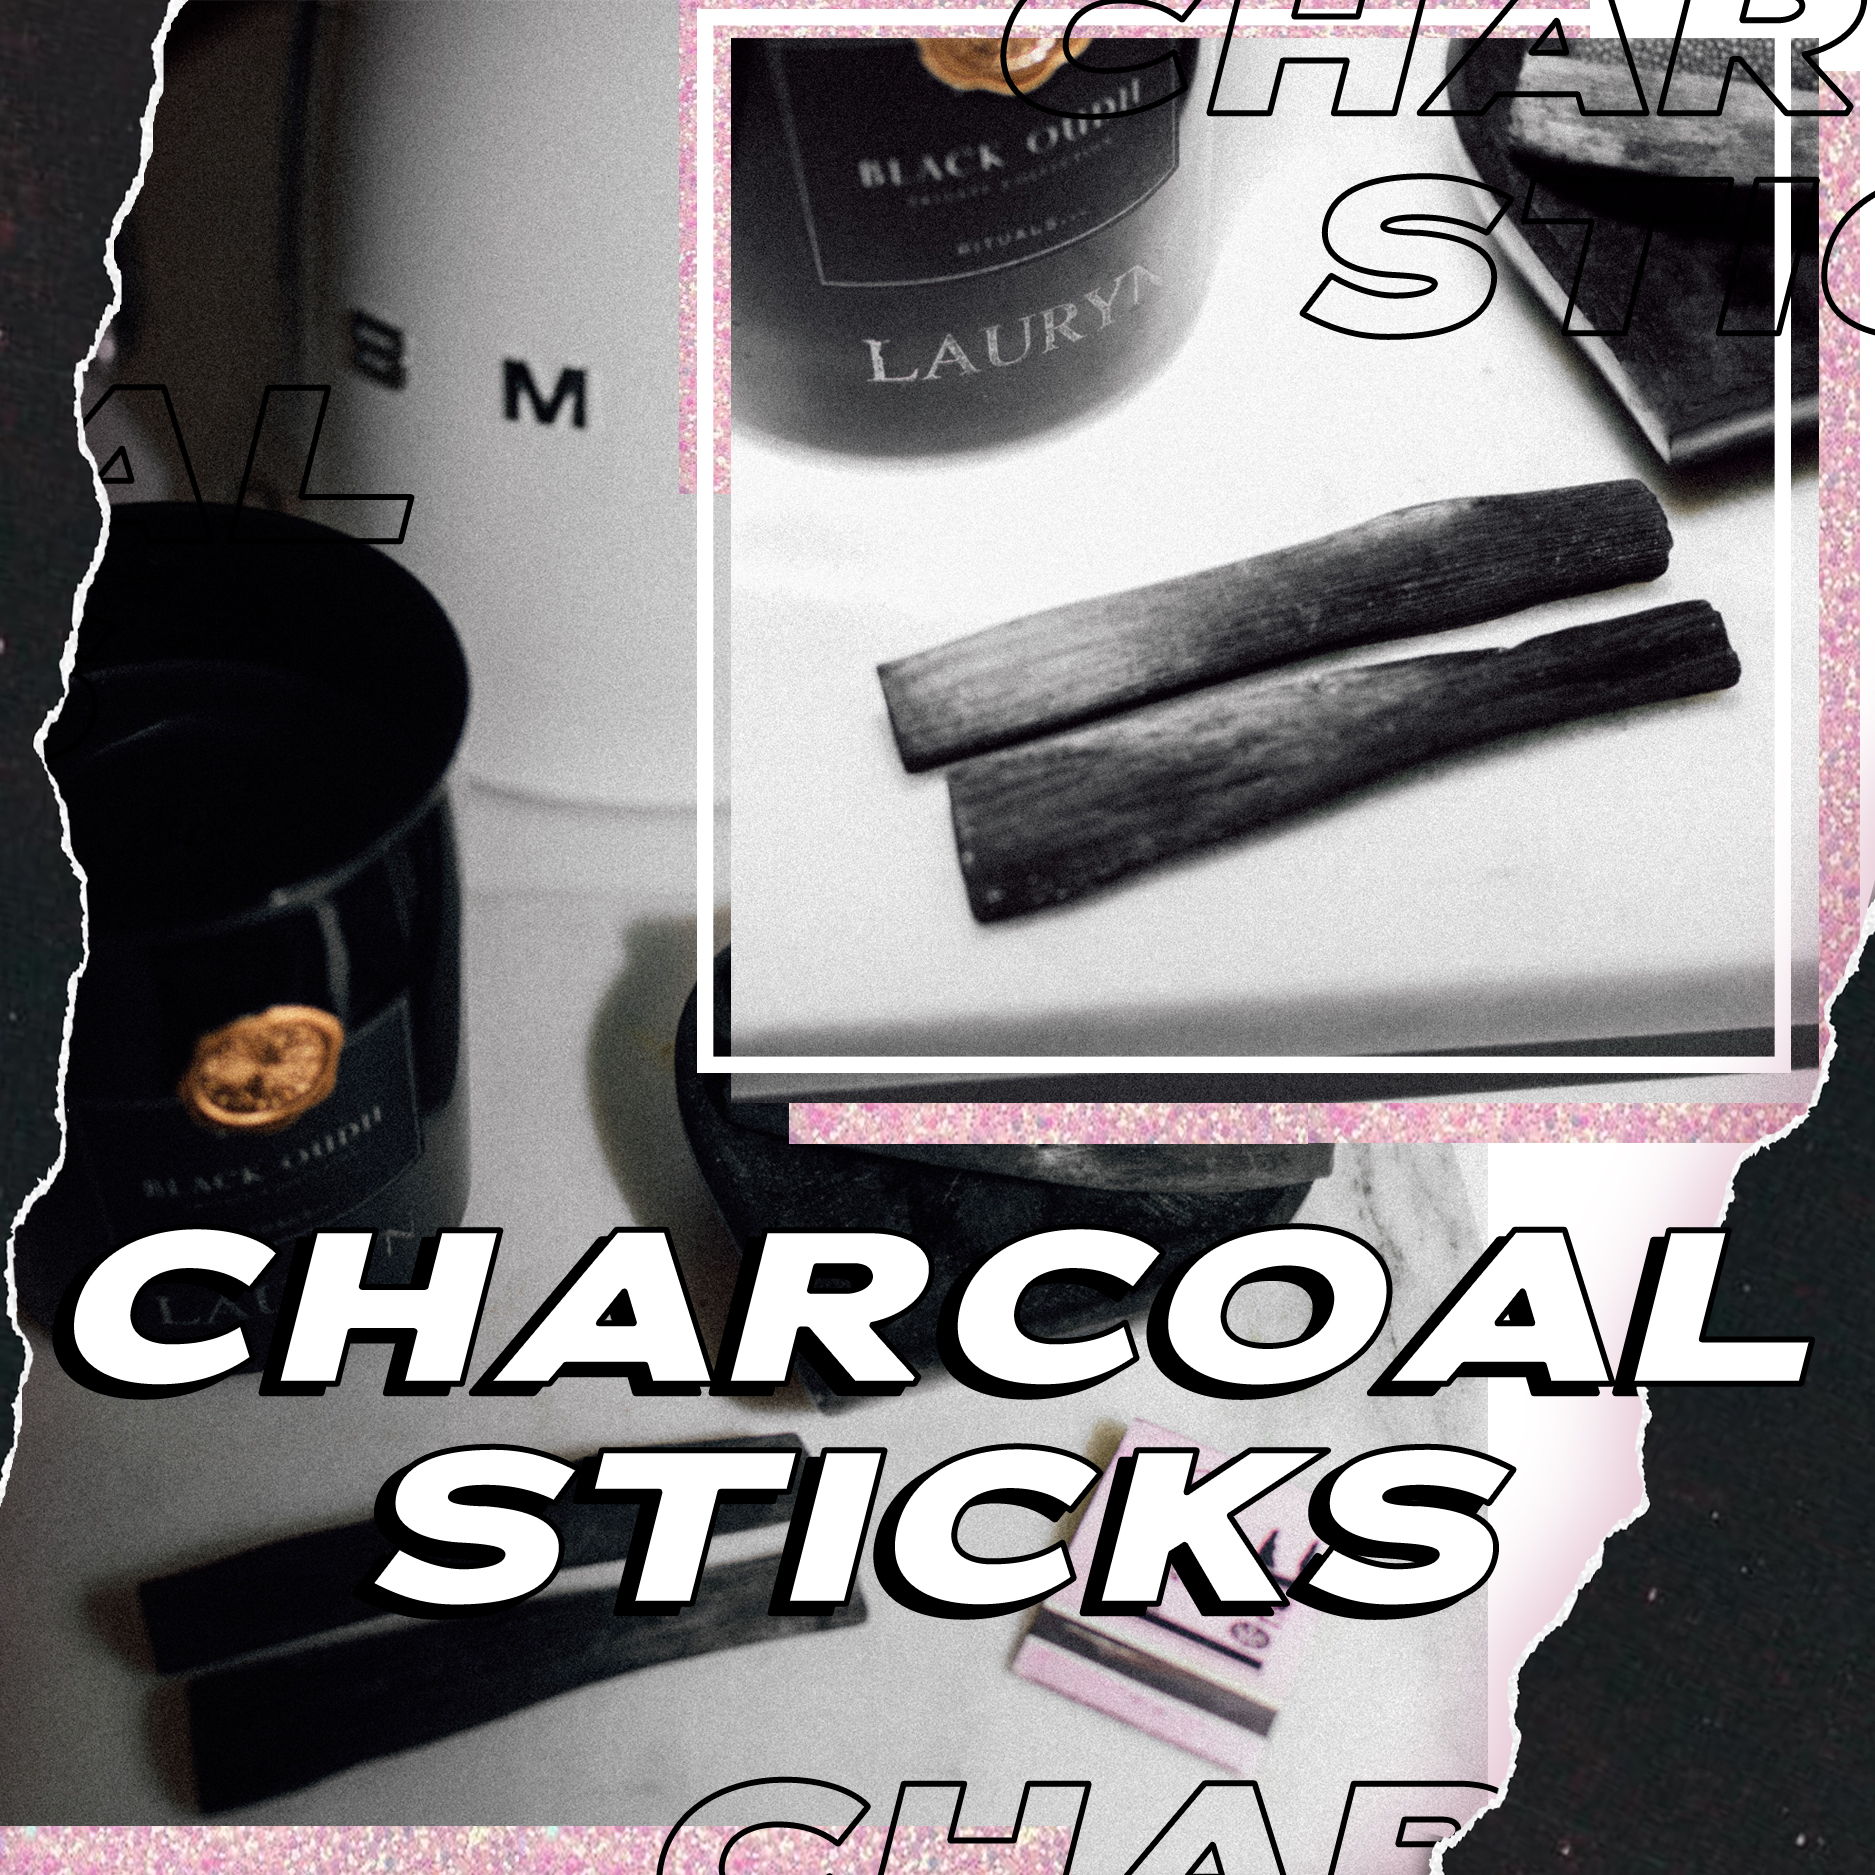 using charcoal sticks for water purification, beauty & skincare | by the skinny confidential